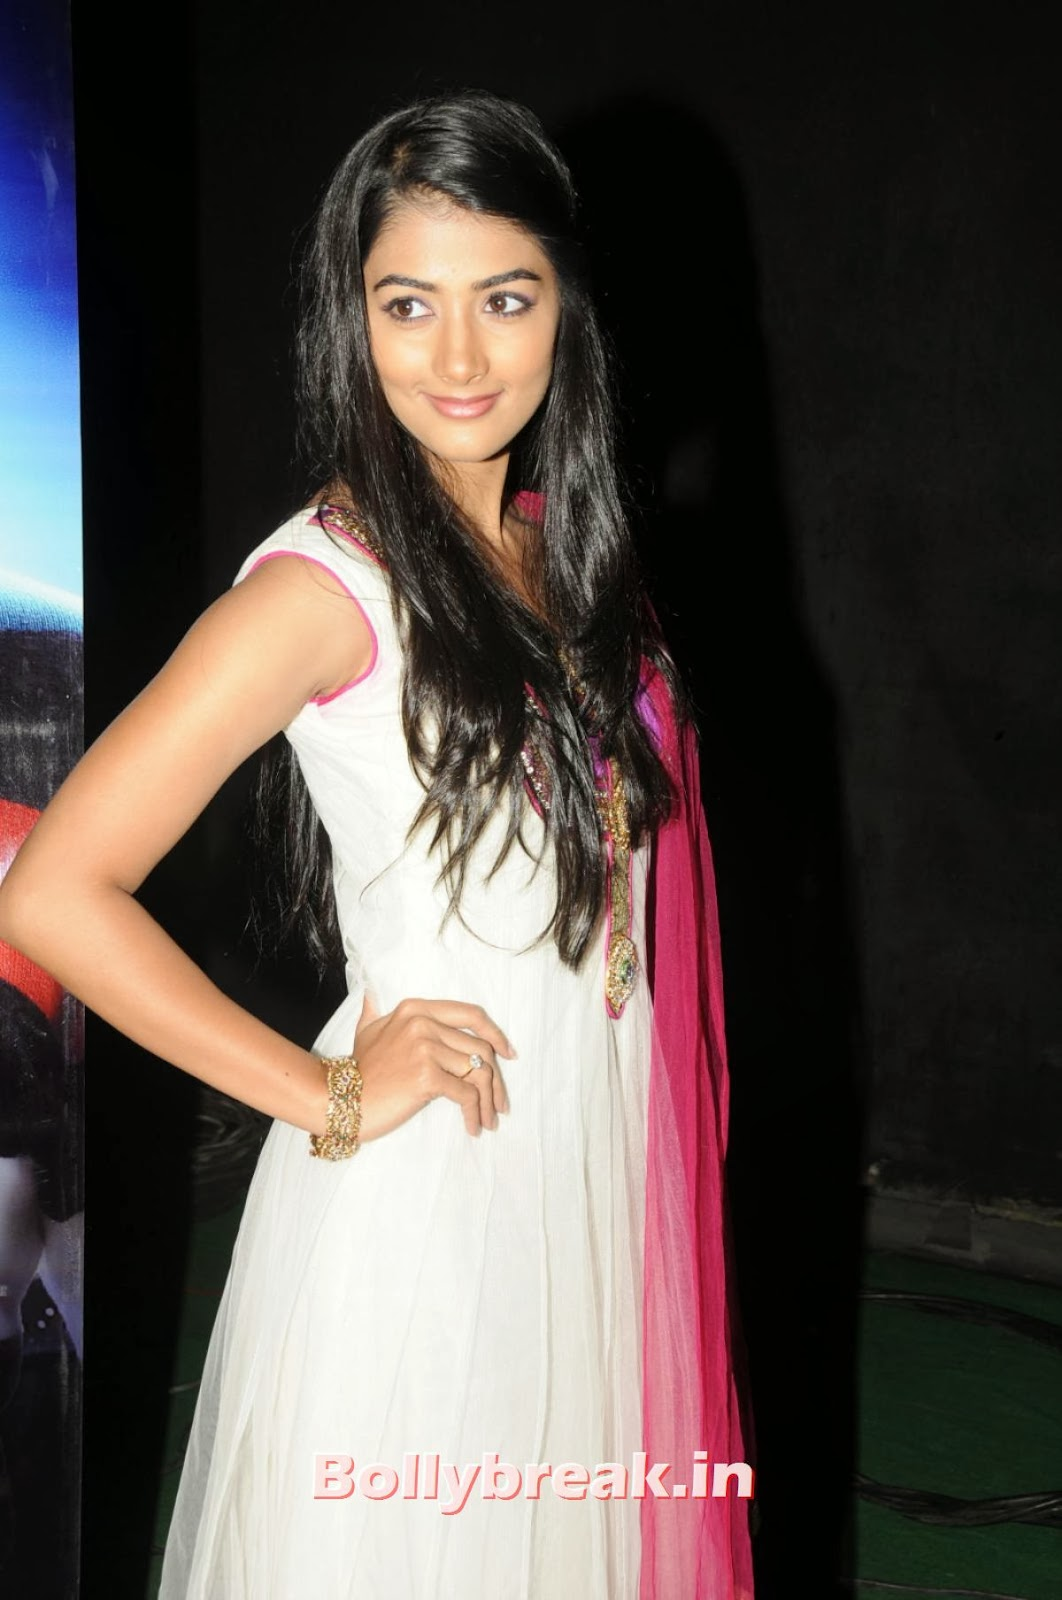 She has been crowned as the Miss Universe India 2010 second runnee up., Pooja Hegde Photo Gallery - Ex miss India